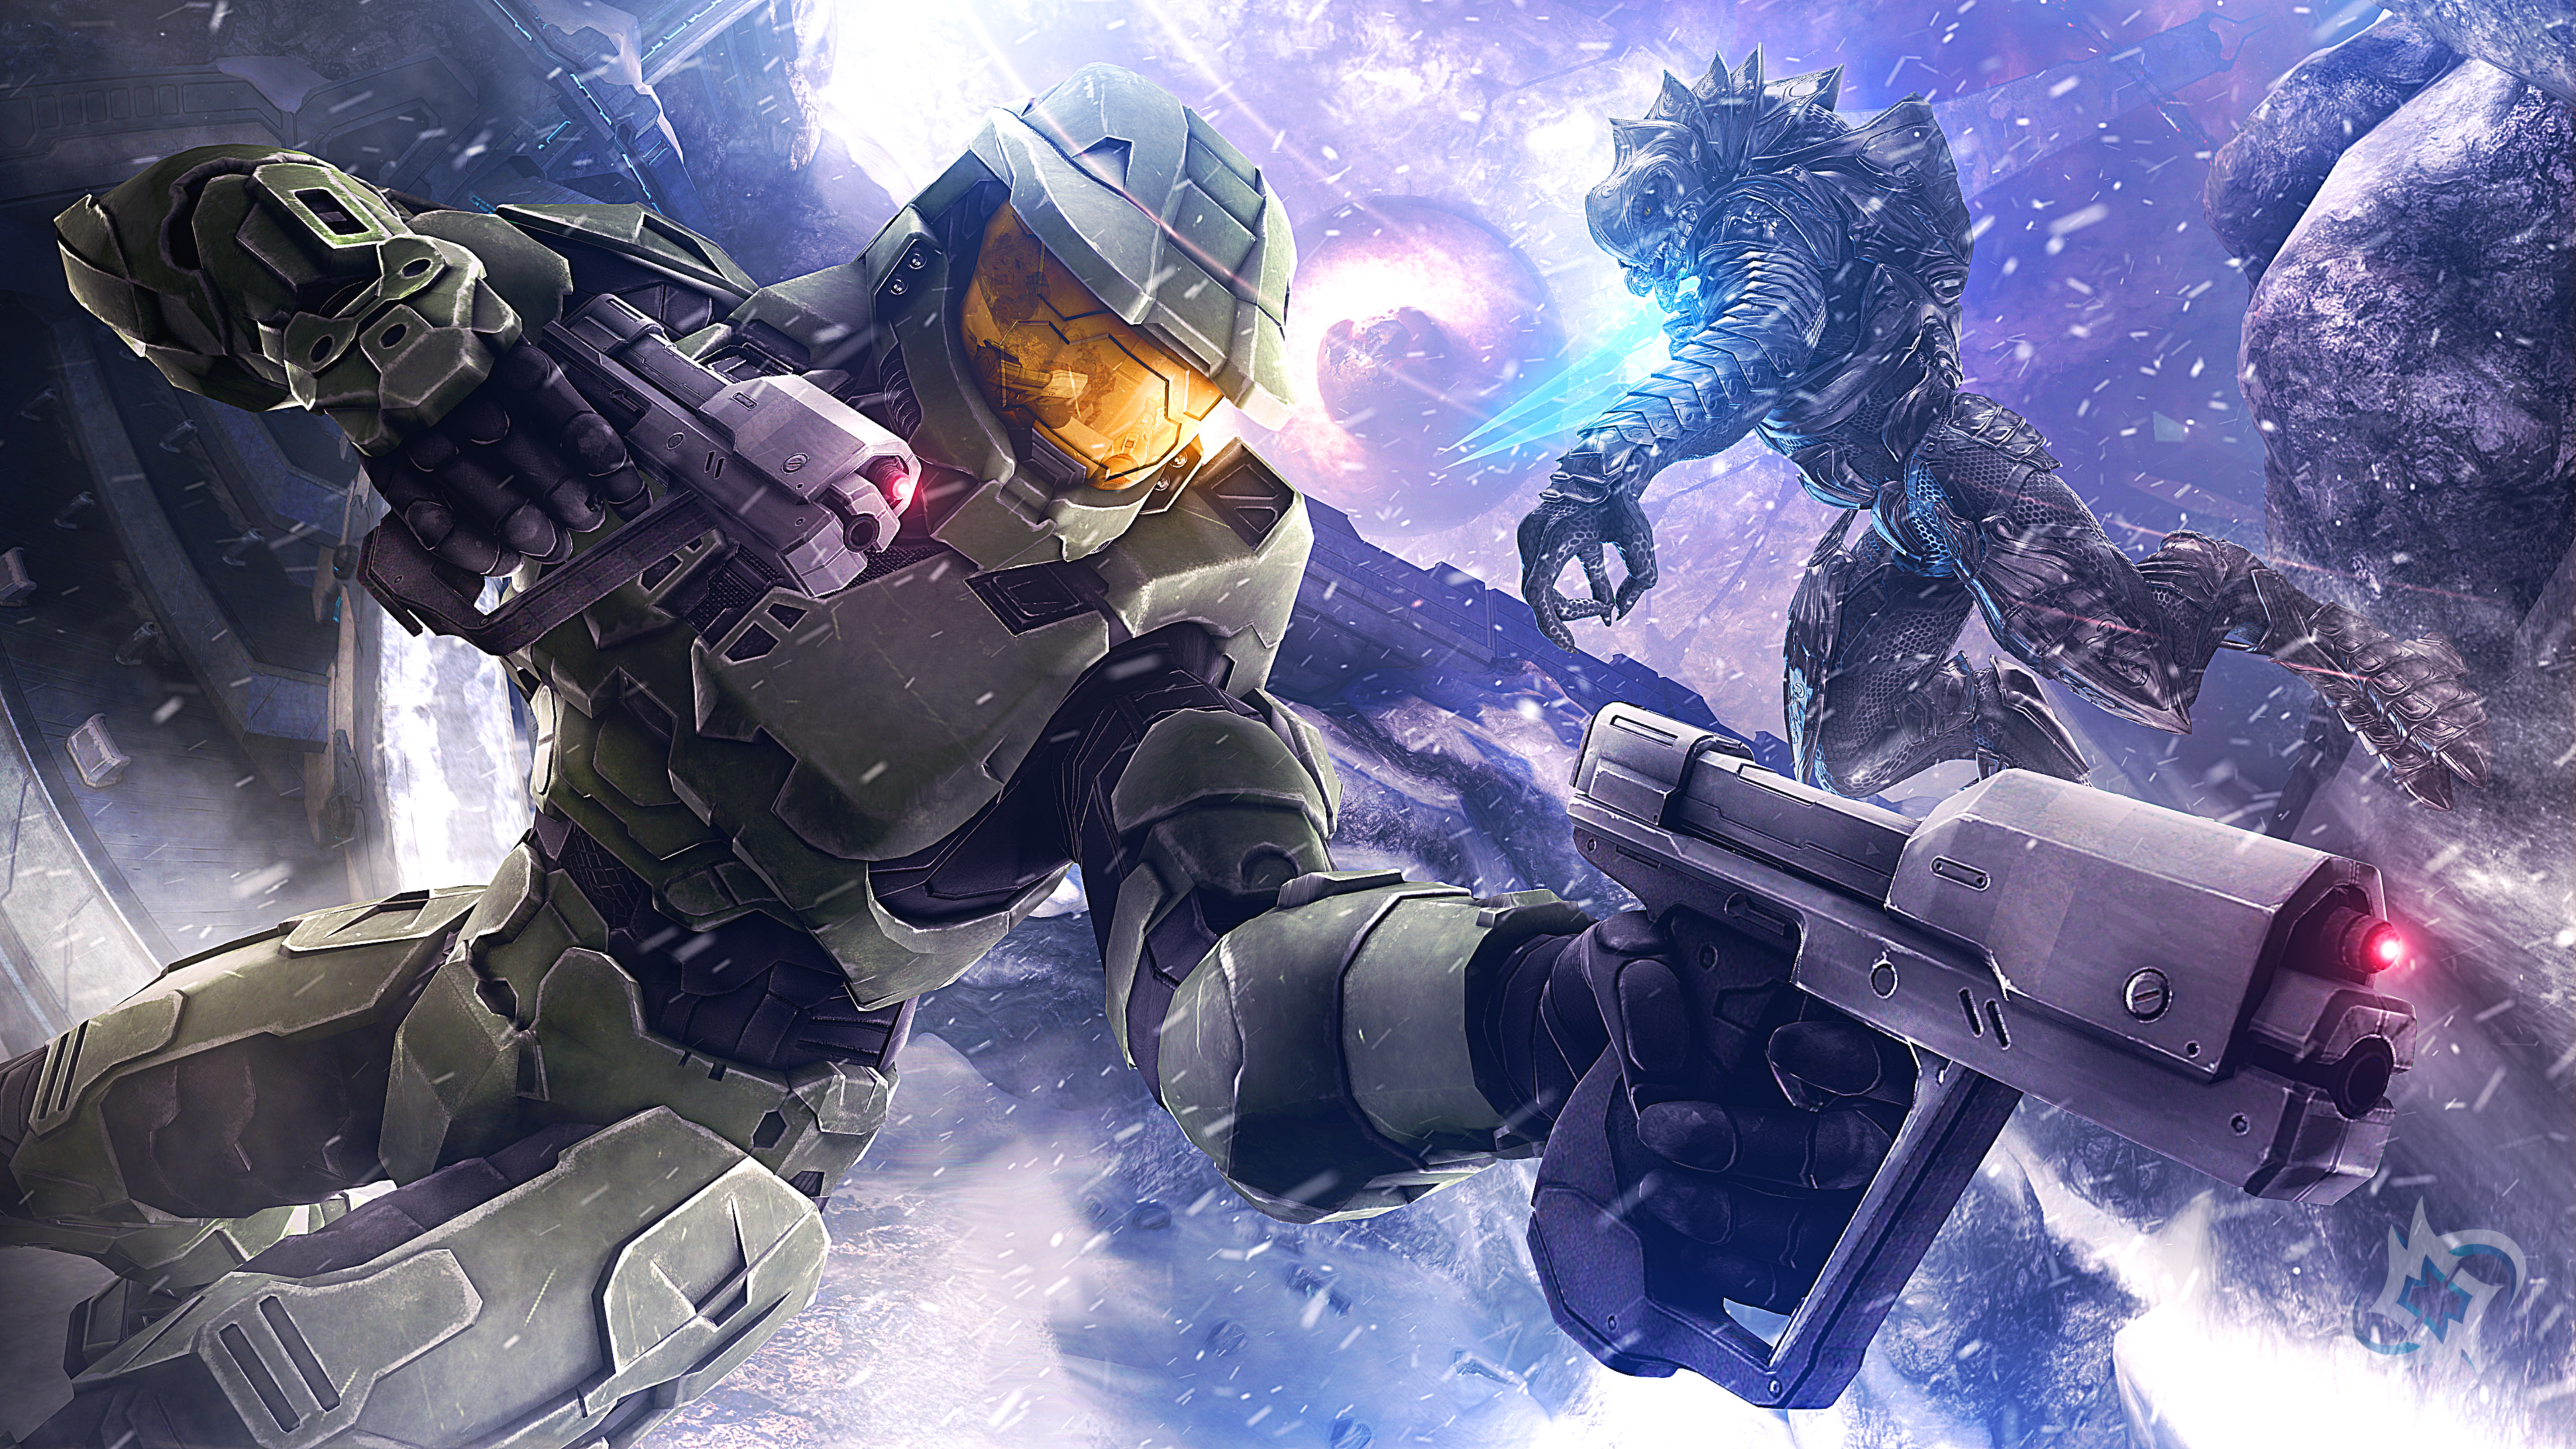 Master Chief Halo 3 4k Wallpapers 1282745 Hd Wallpaper